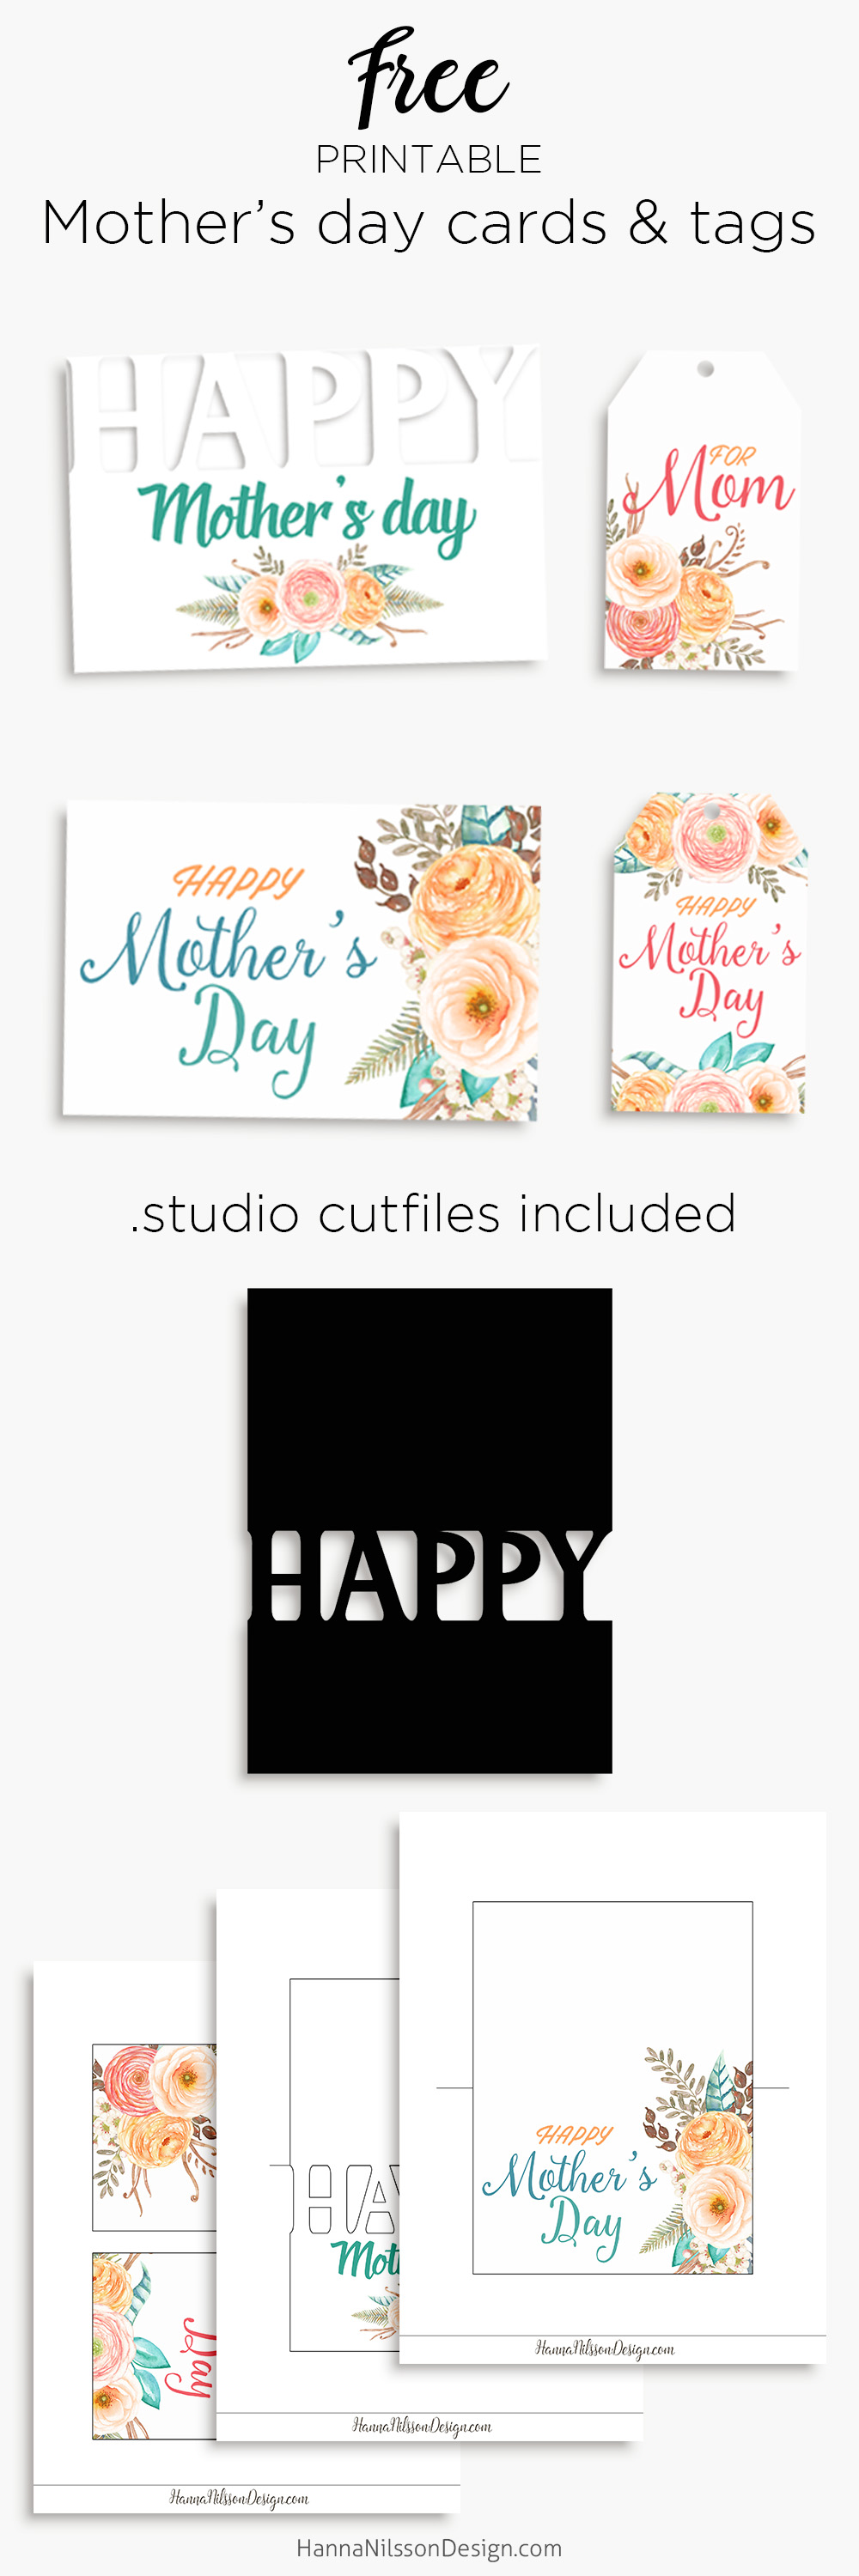 Happy mother's day | Printable cards and tags to celebrate your mom | .studio print and cut file included to use with Silhouette cutting machine